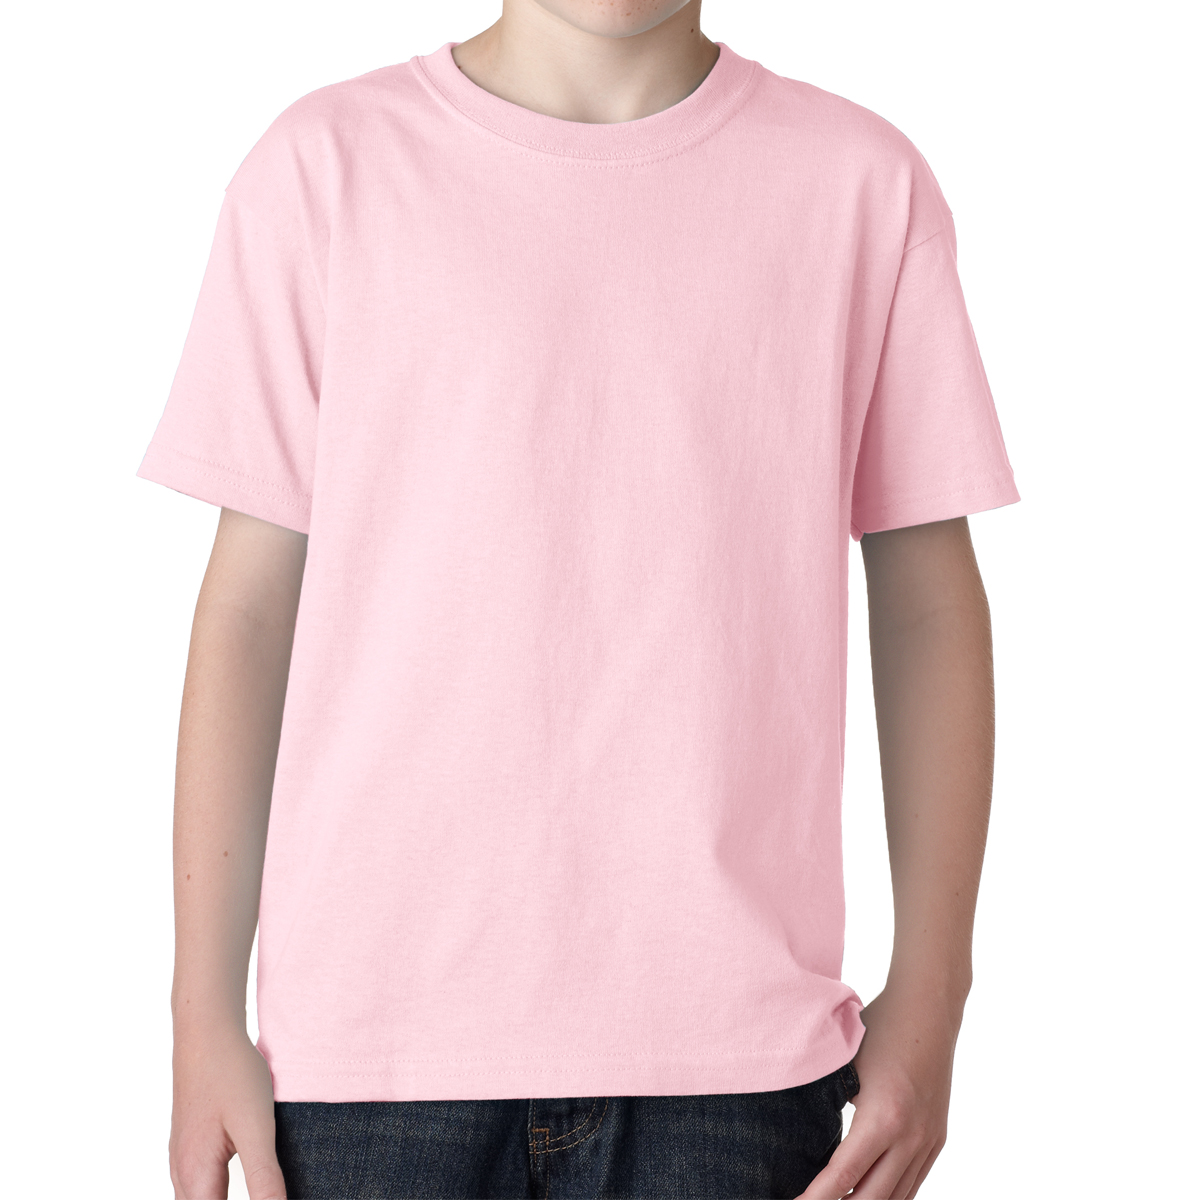 5000y gildan youth heavy cotton t shirt for Pink t shirt template